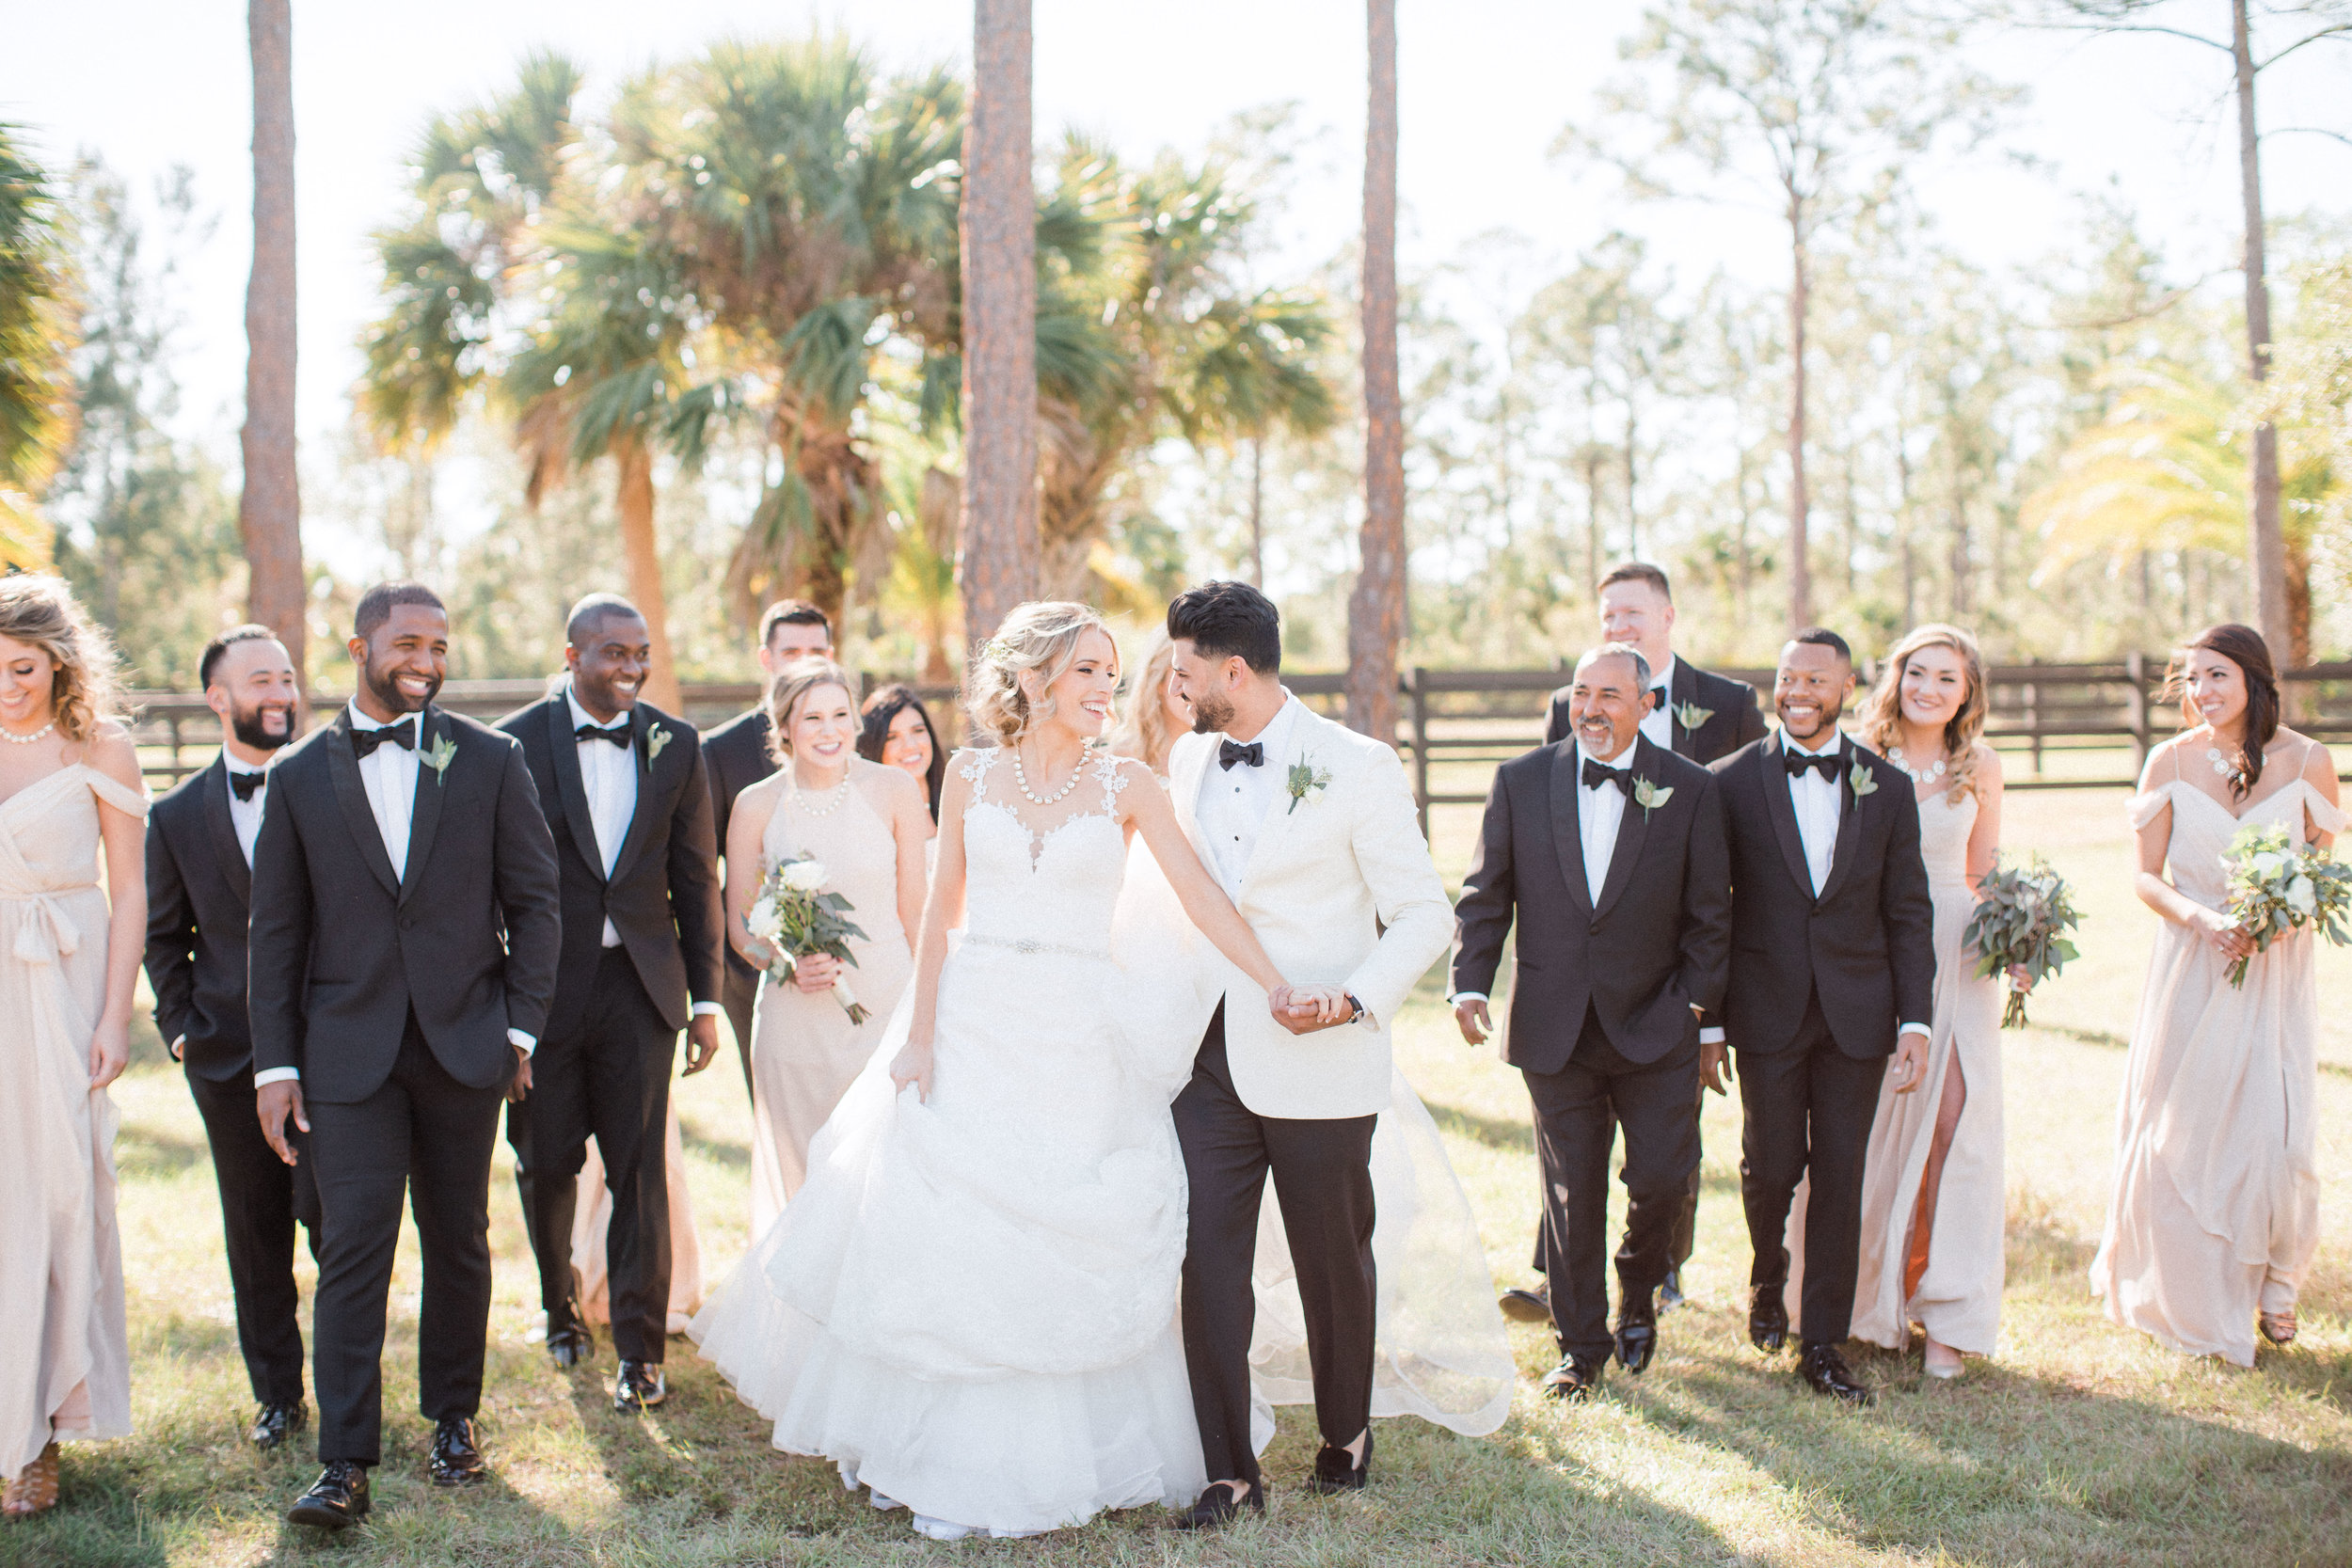 bridal-party-photos-florida-wedding-fort-myers-la-casa-toscana-outdoor-ceremony-winter-wedding-brown-chairs-white-gazebo-planned-by-mostly-becky-weddings-traveling-wedding-planner-destination-wedding-lakeside-bridal-portraits-bride-groom-black-tie-tux-formal-wedding